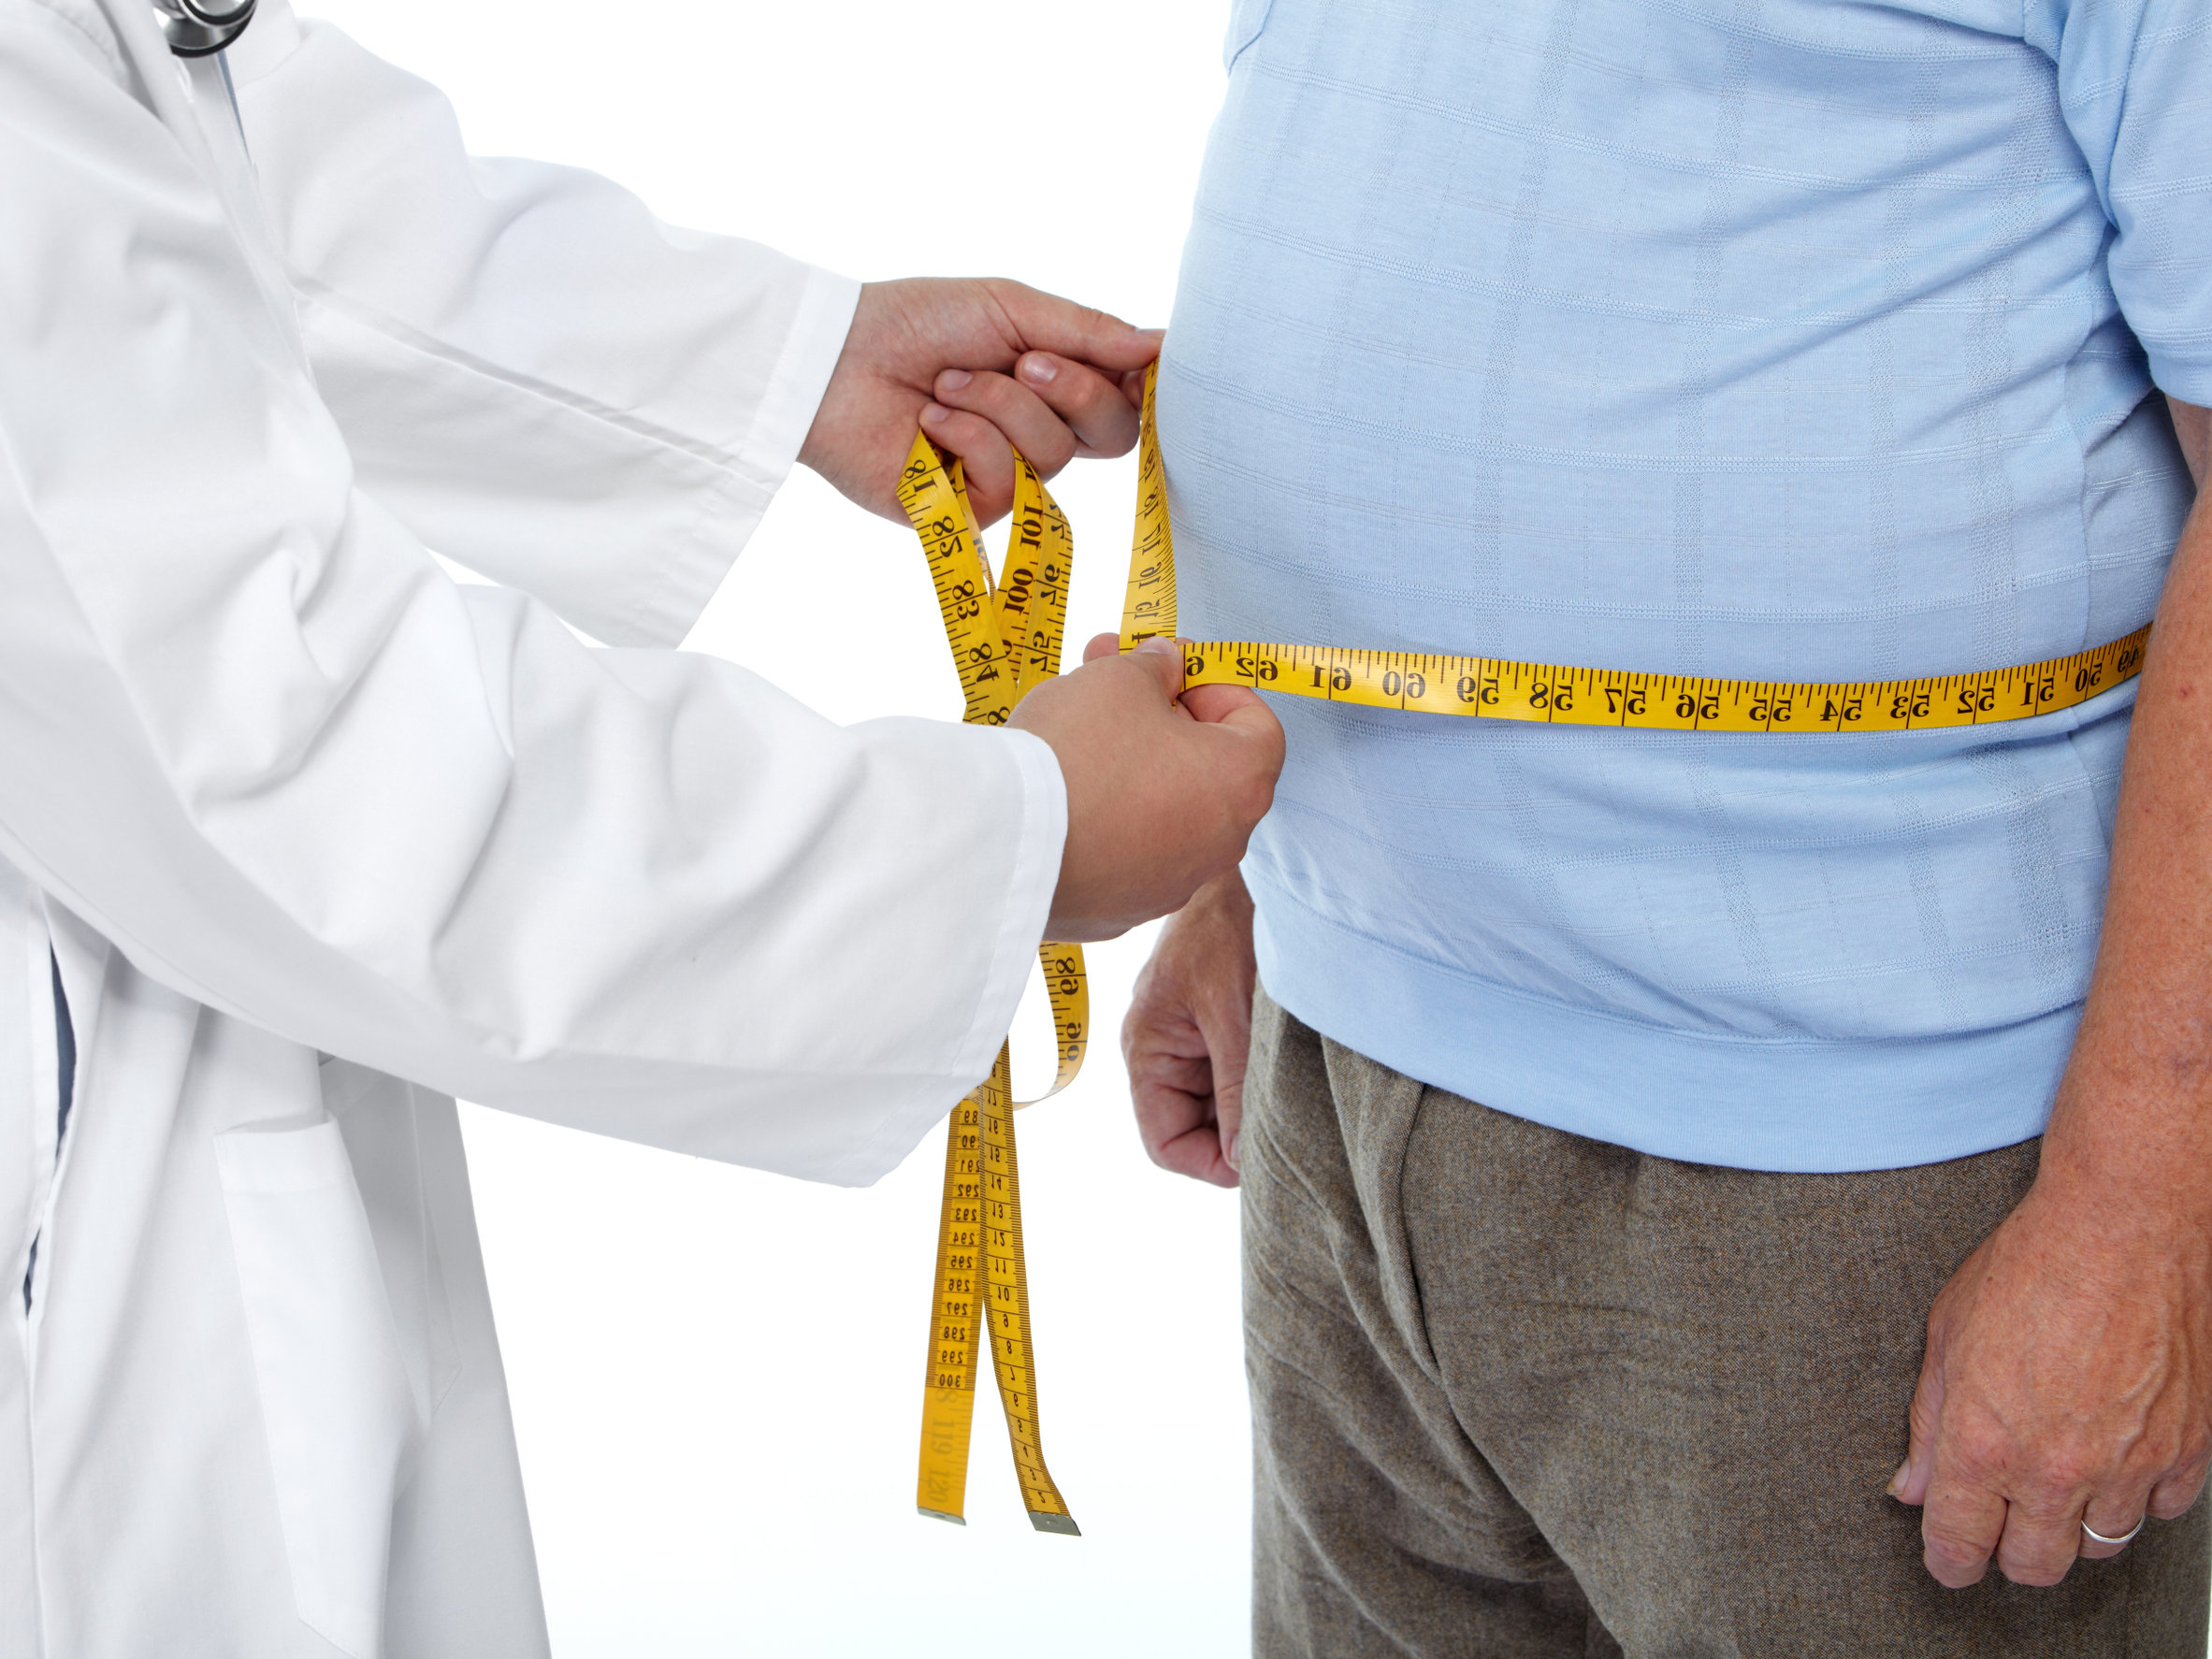 Top 6 Reasons You May Need a Doctor's Help With Weight Loss